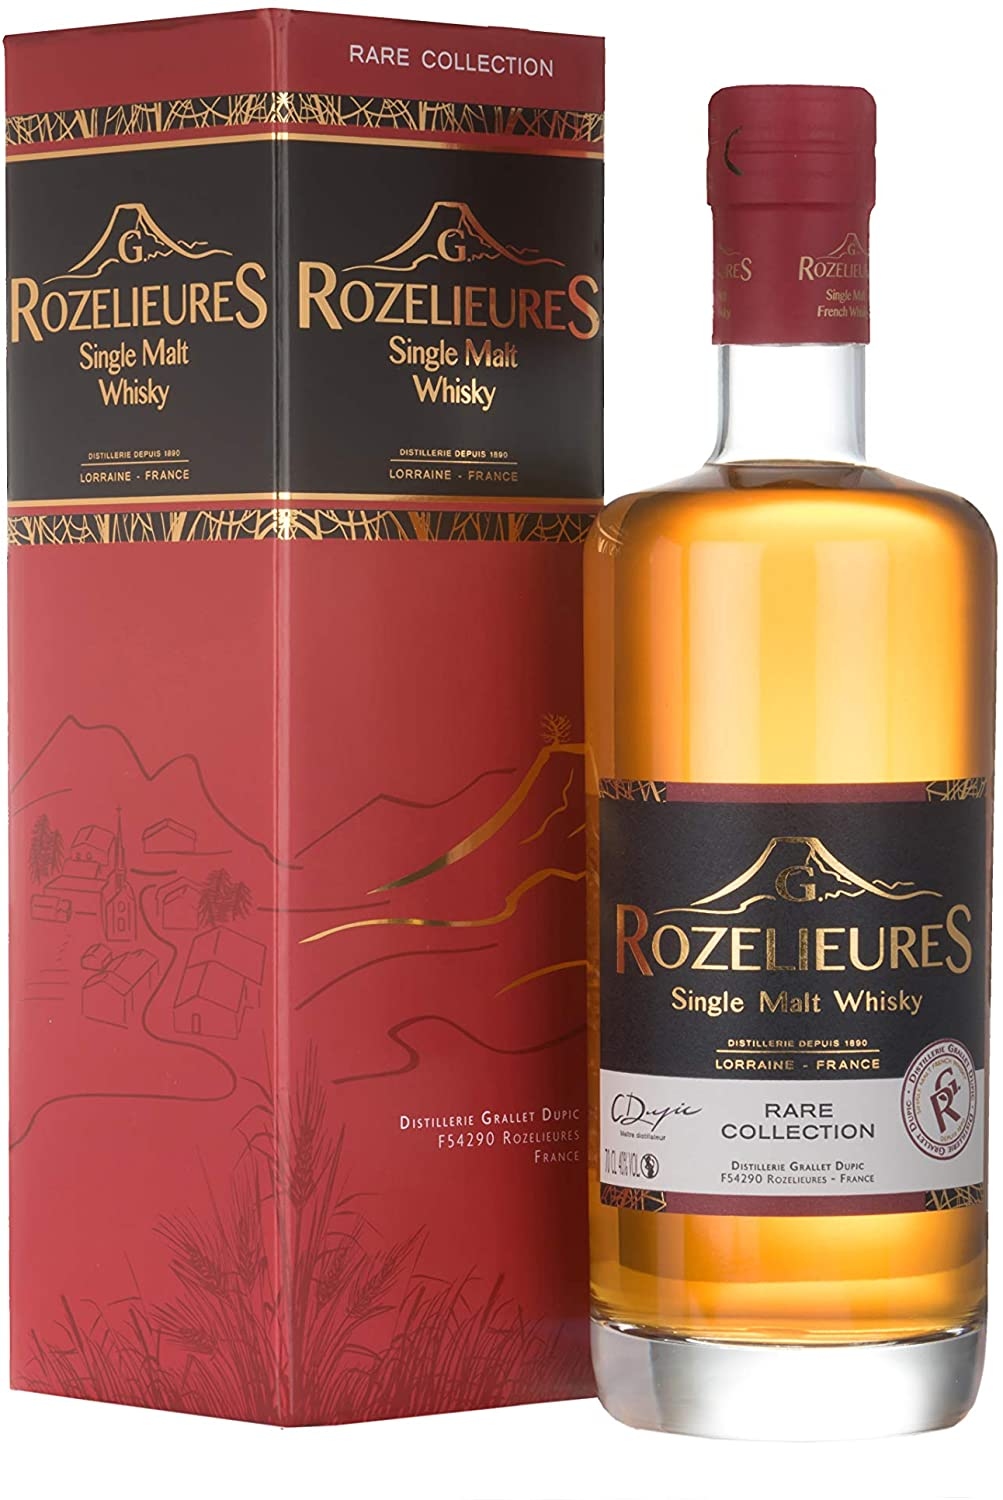 ROZELIEURES, Rare Collection